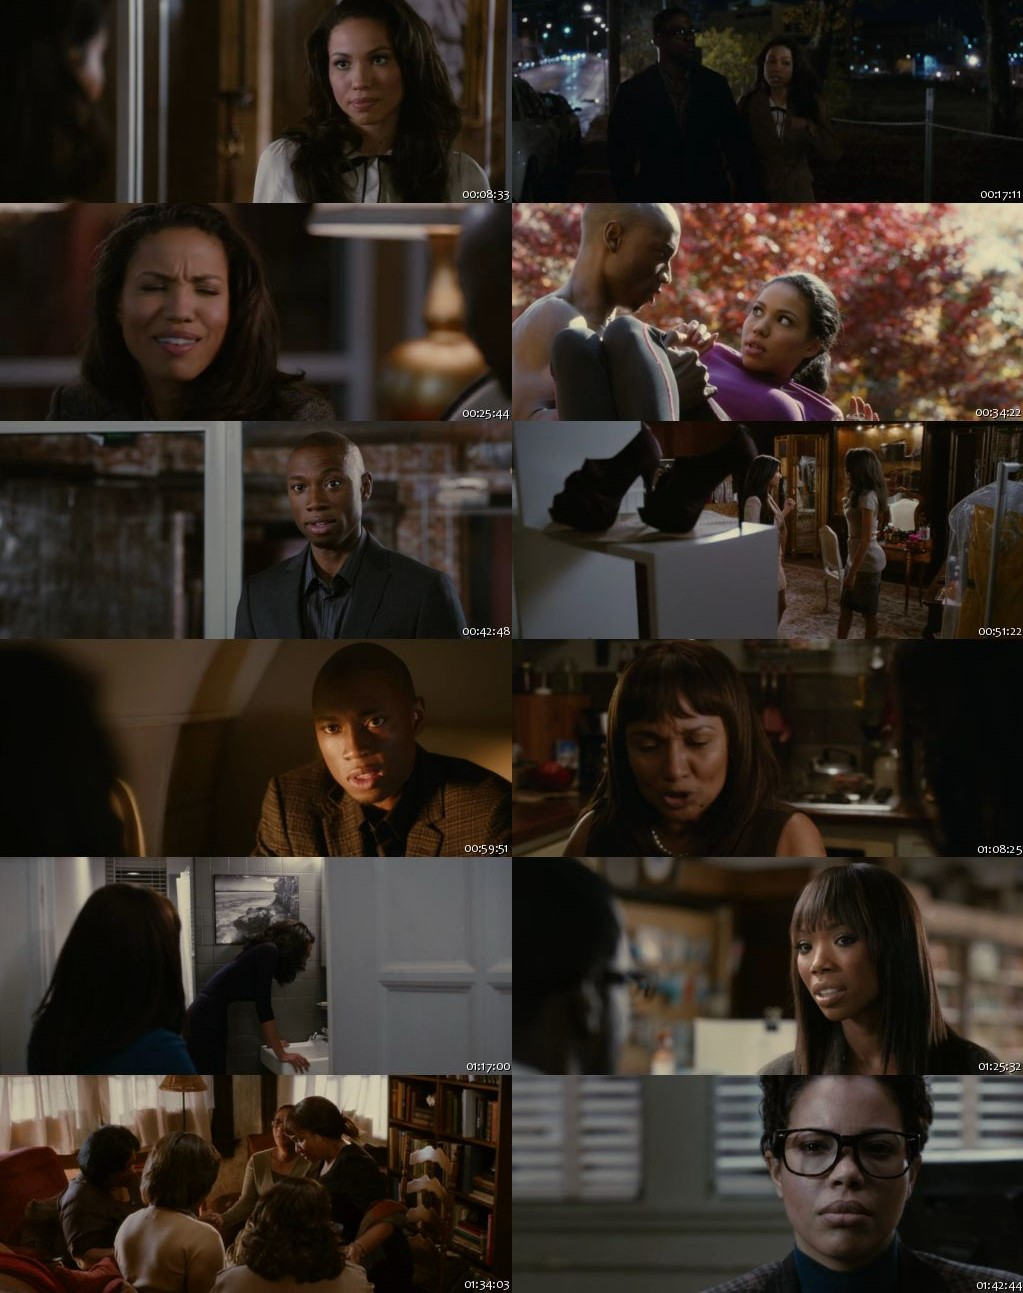 Temptation: Confessions of a Marriage Counselor 2013 BRRip 480p 300Mb [Hindi-English]